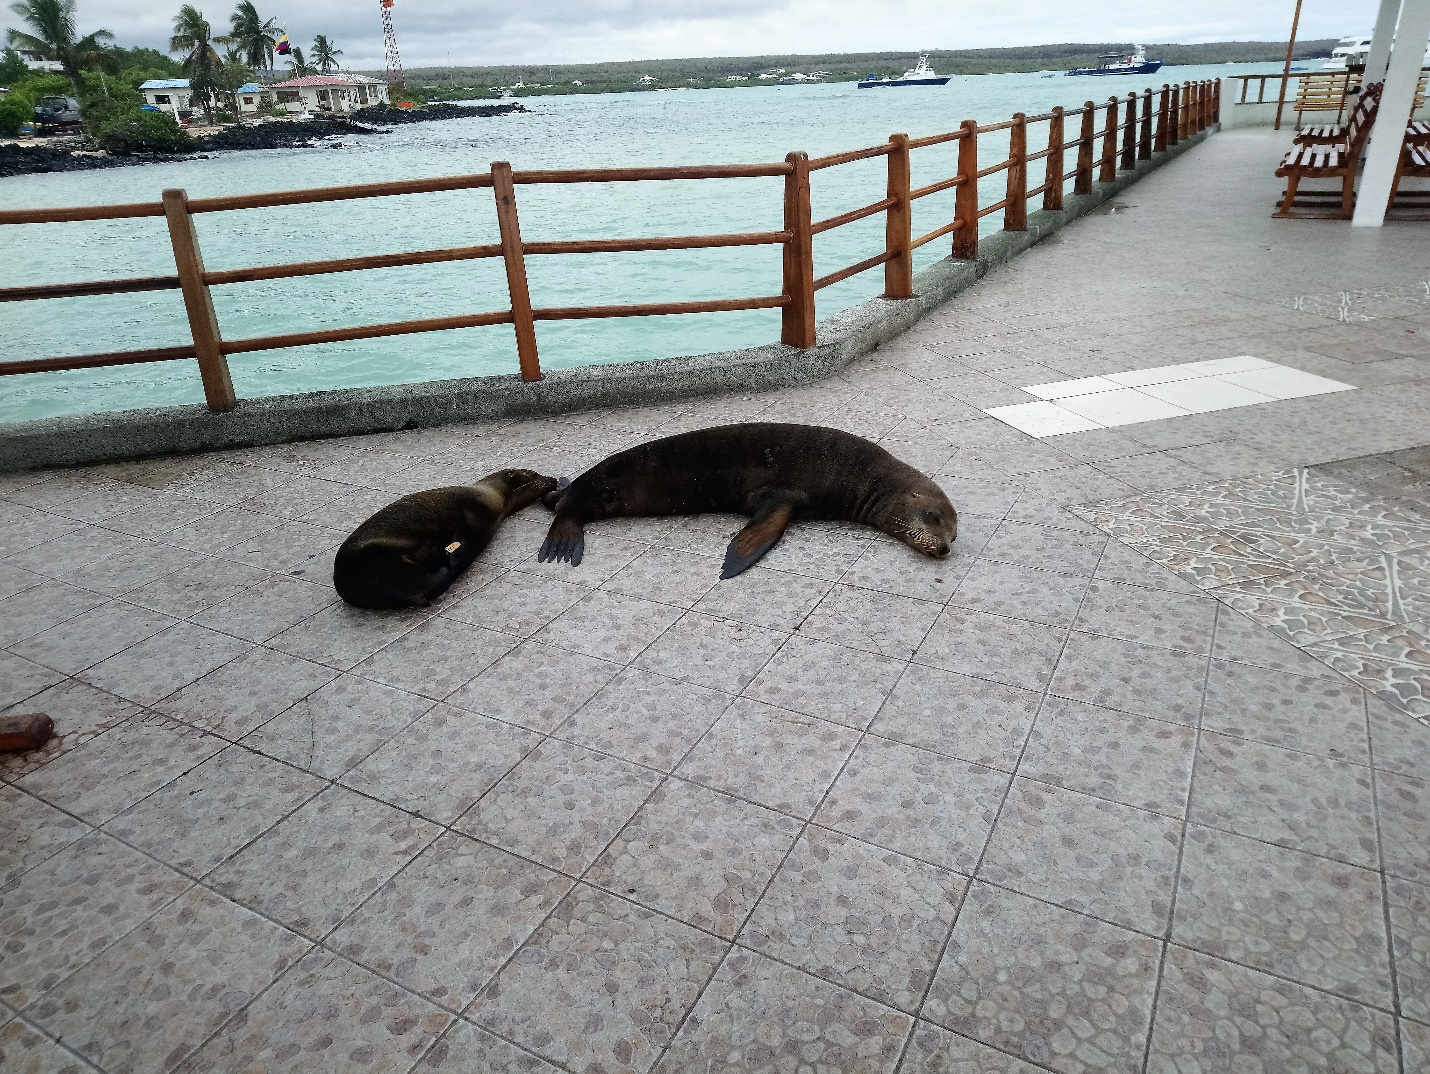 A month volunteering in the Galapagos Islands